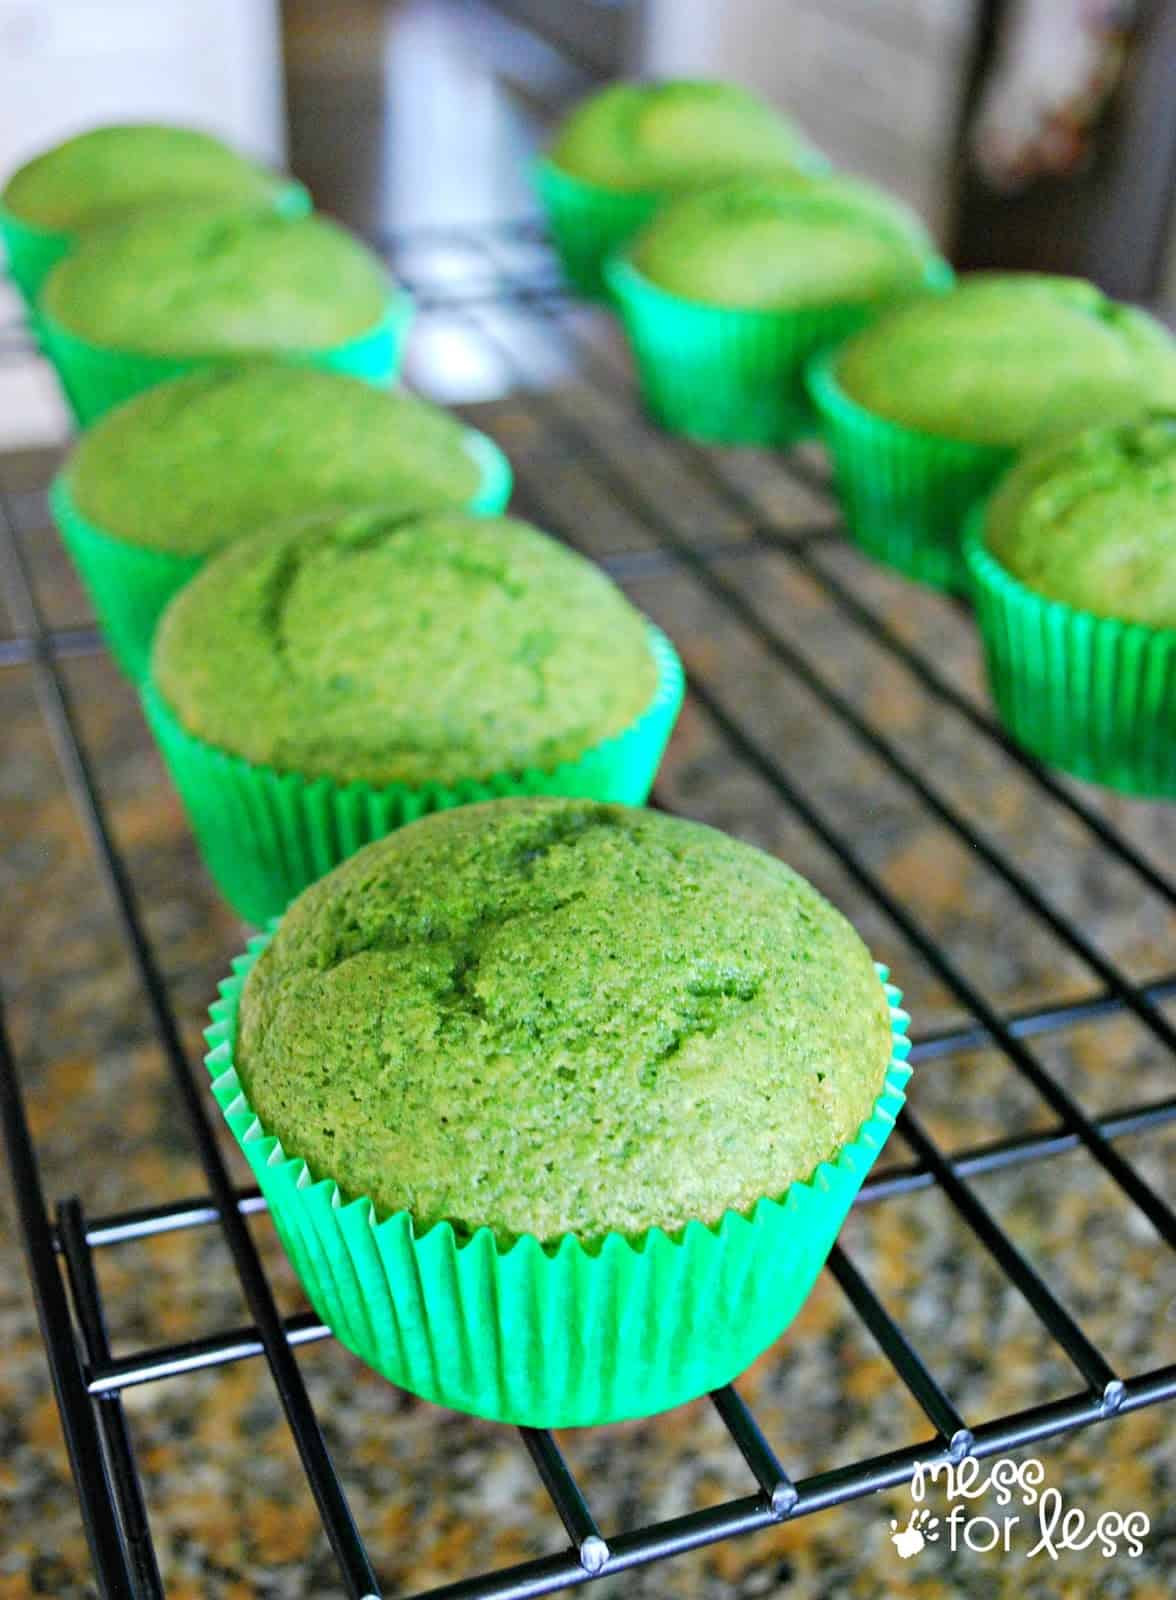 Spinach Muffin Recipe - Healthy and Delicious!